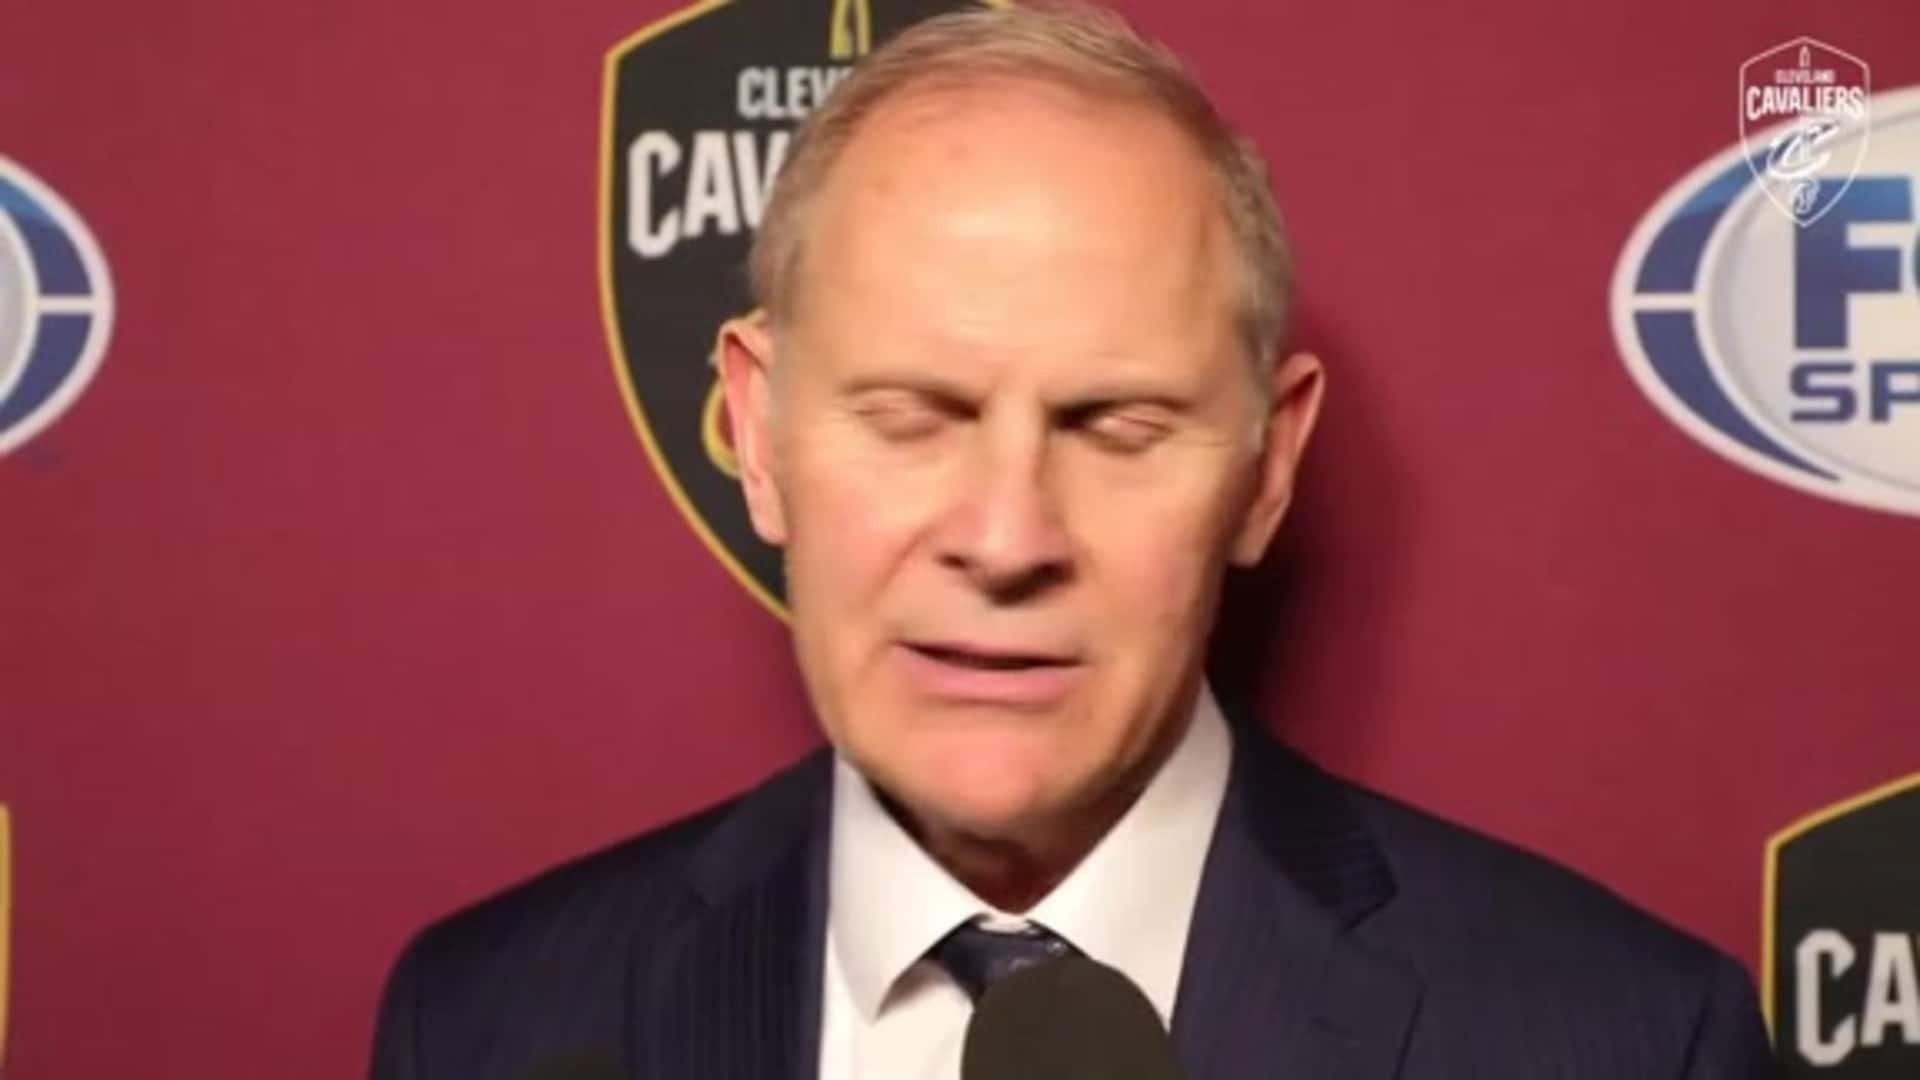 Cavs at Spurs Postgame: Coach Beilein